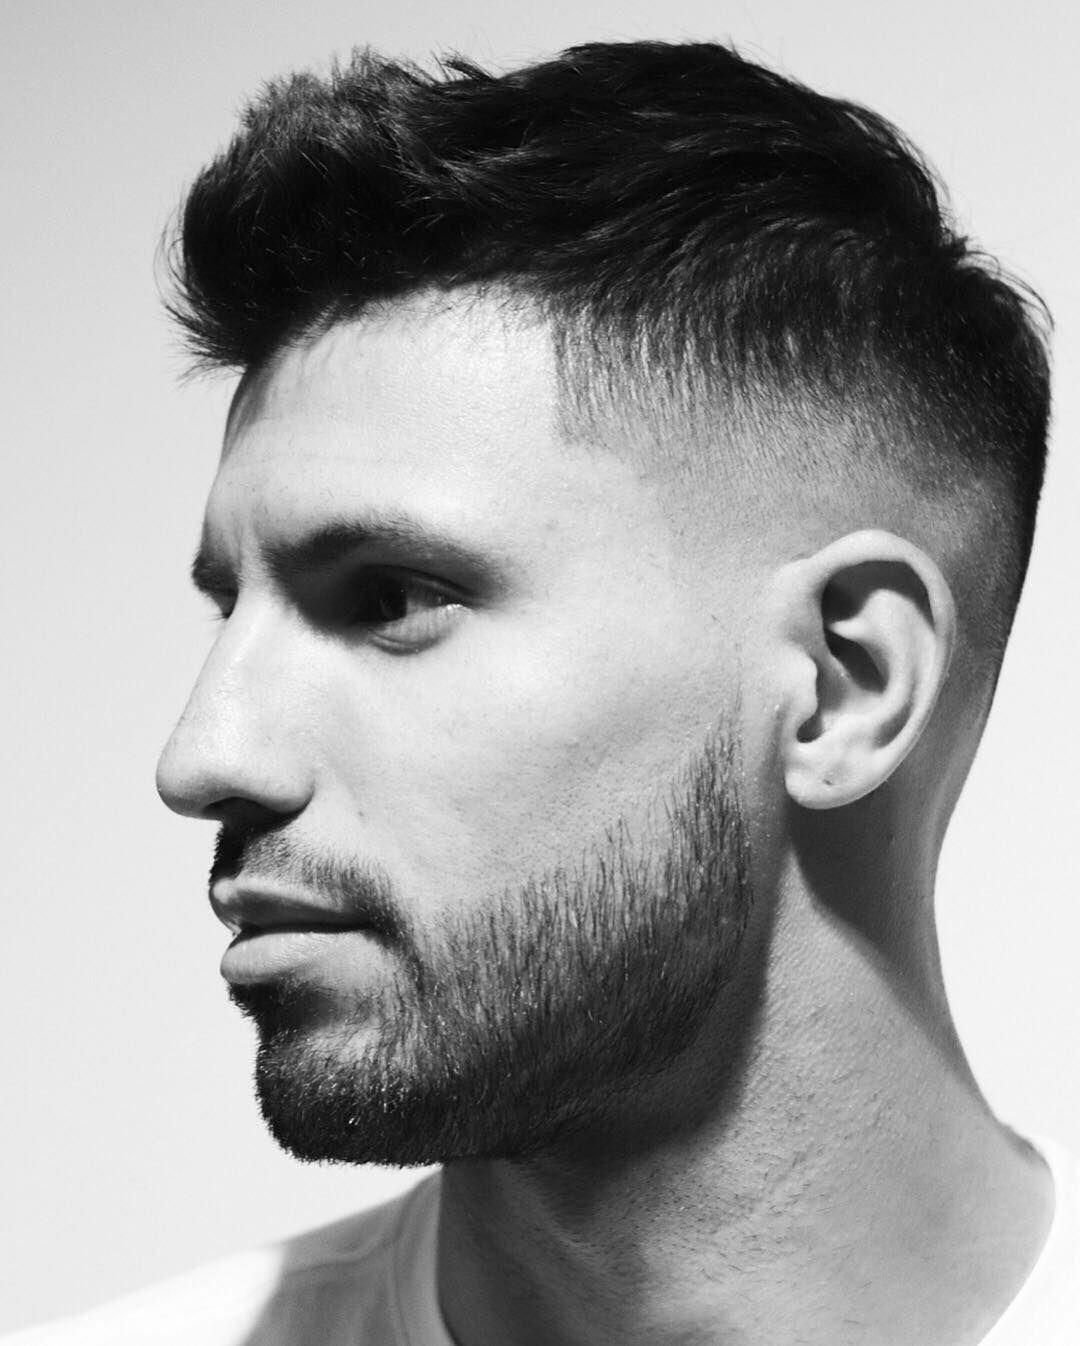 sergio aguero haircut #barbershophaircuts | hair cuts in 2019 | hair